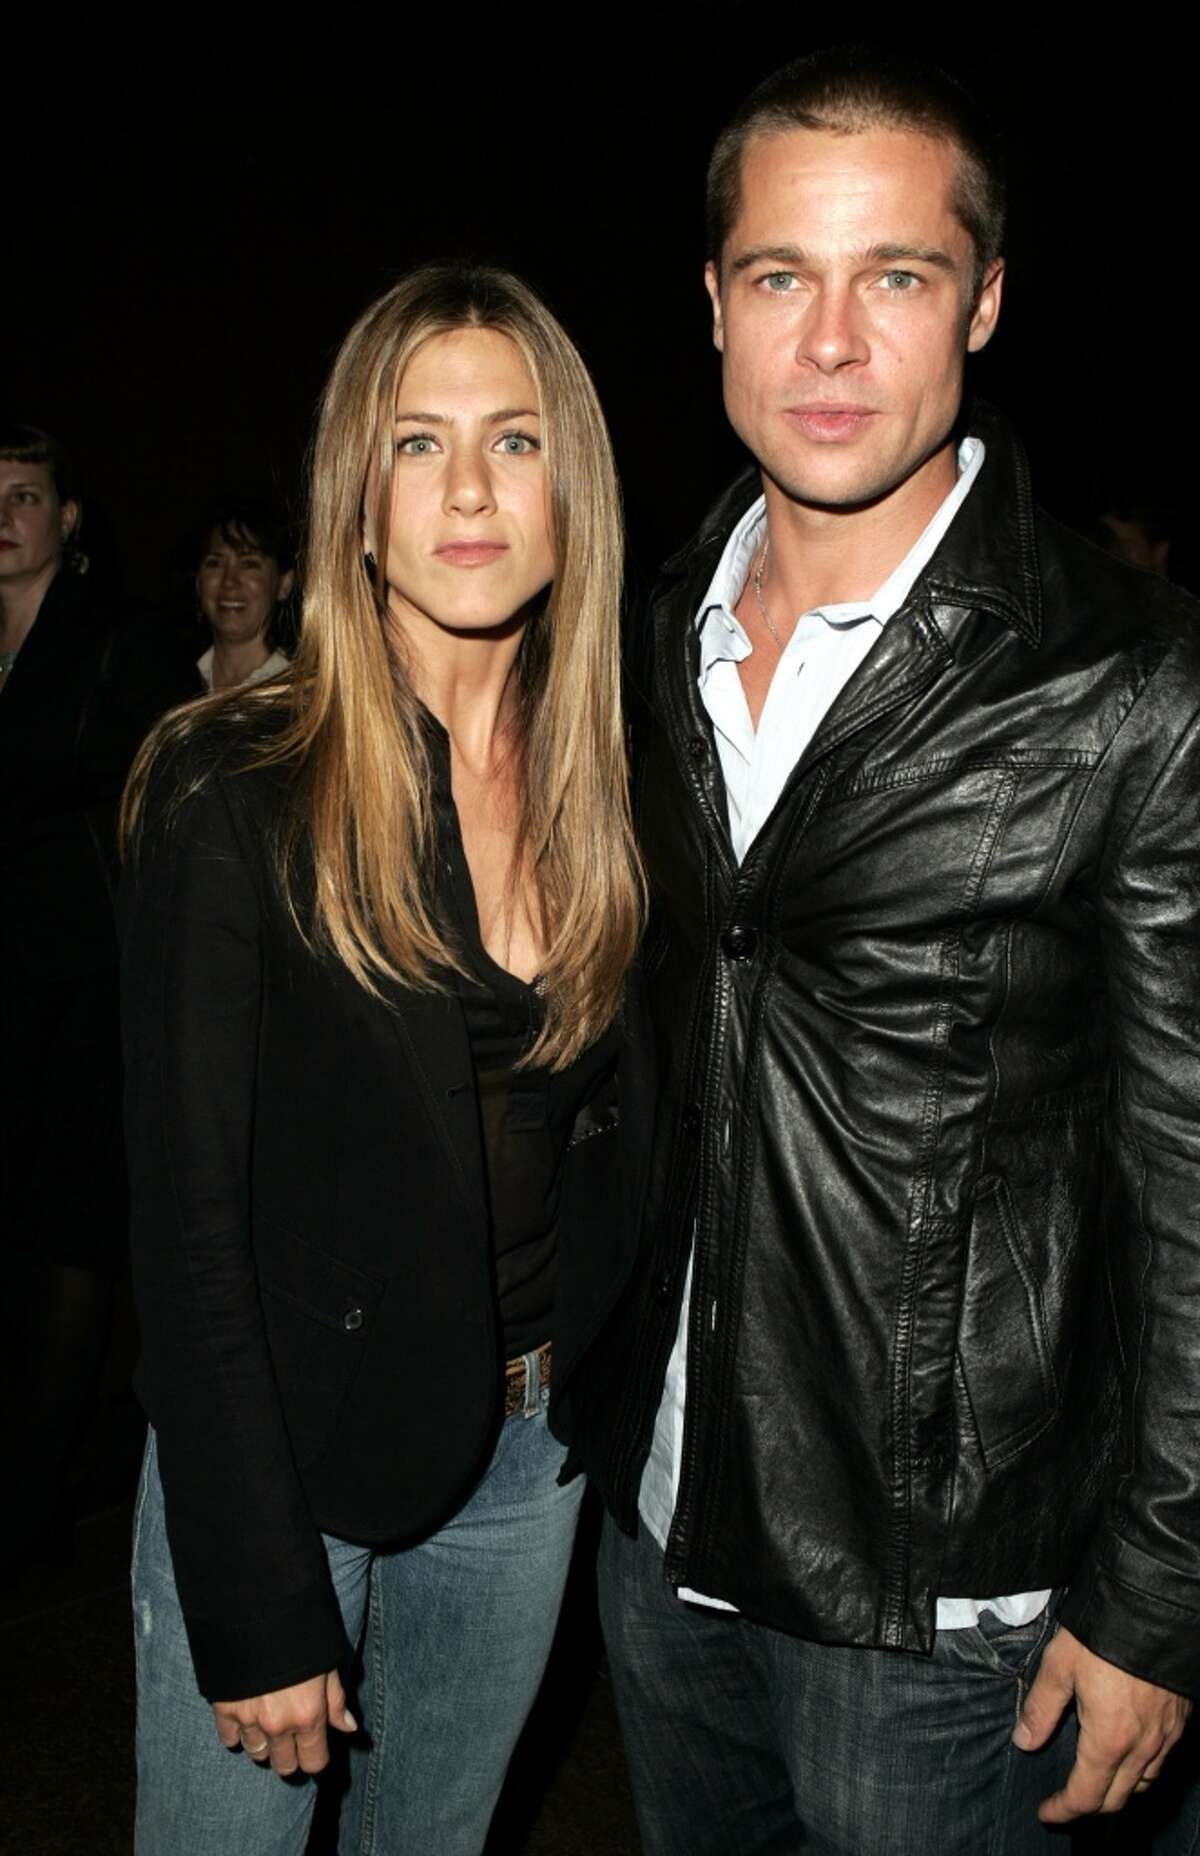 January 2005: Divorce from Aniston announced Pitt and Jennifer Aniston announce that they are splitting after 4 1/2 years of marriage amid rumors of Pitt's infidelity. Pitt denies Jolie is behind the split.